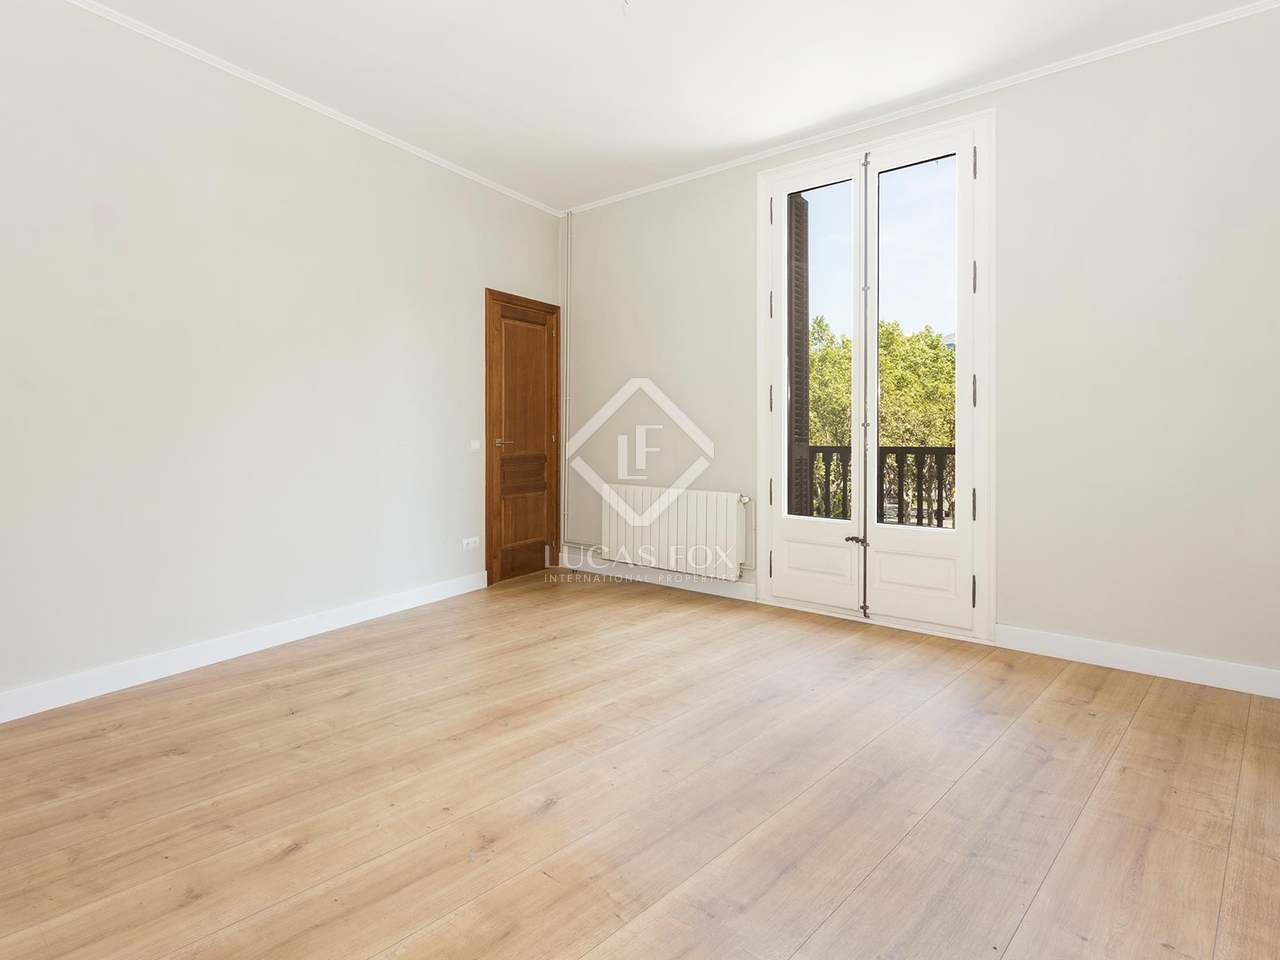 Appartement de 172m a vendre g tico barcelone for Appartement piscine barcelone